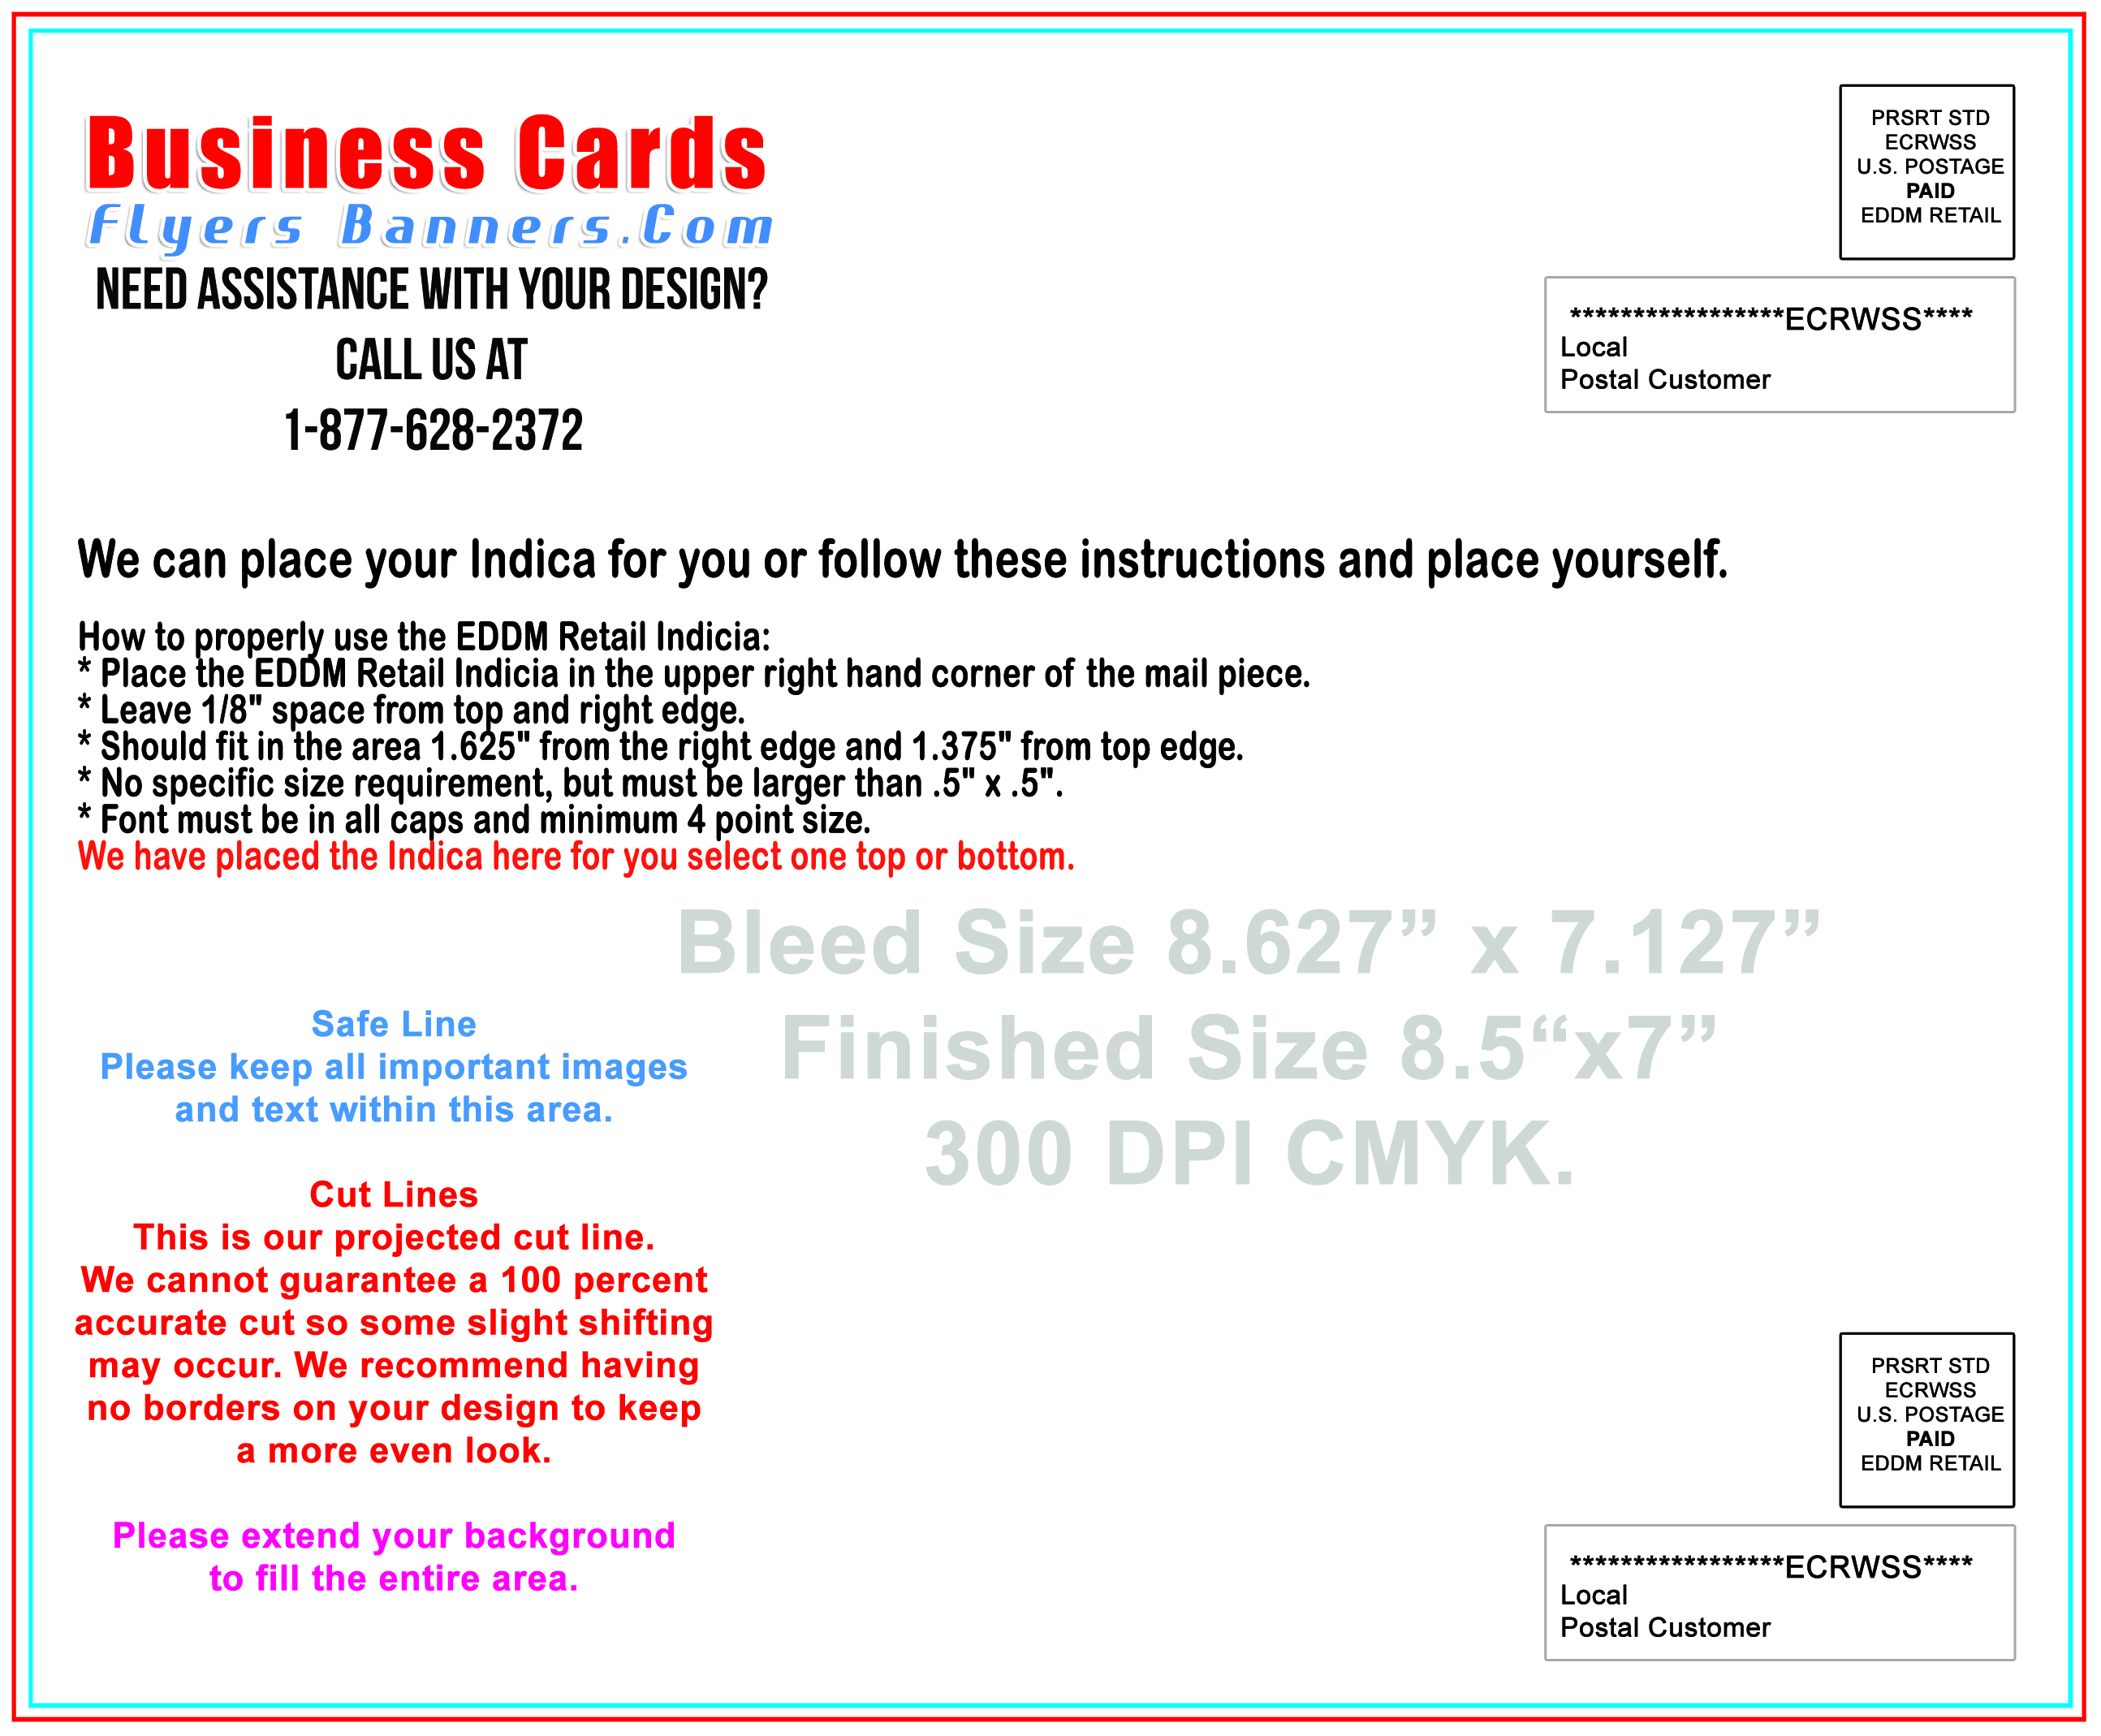 Postcard Templates - Business Cards Flyers and Banners